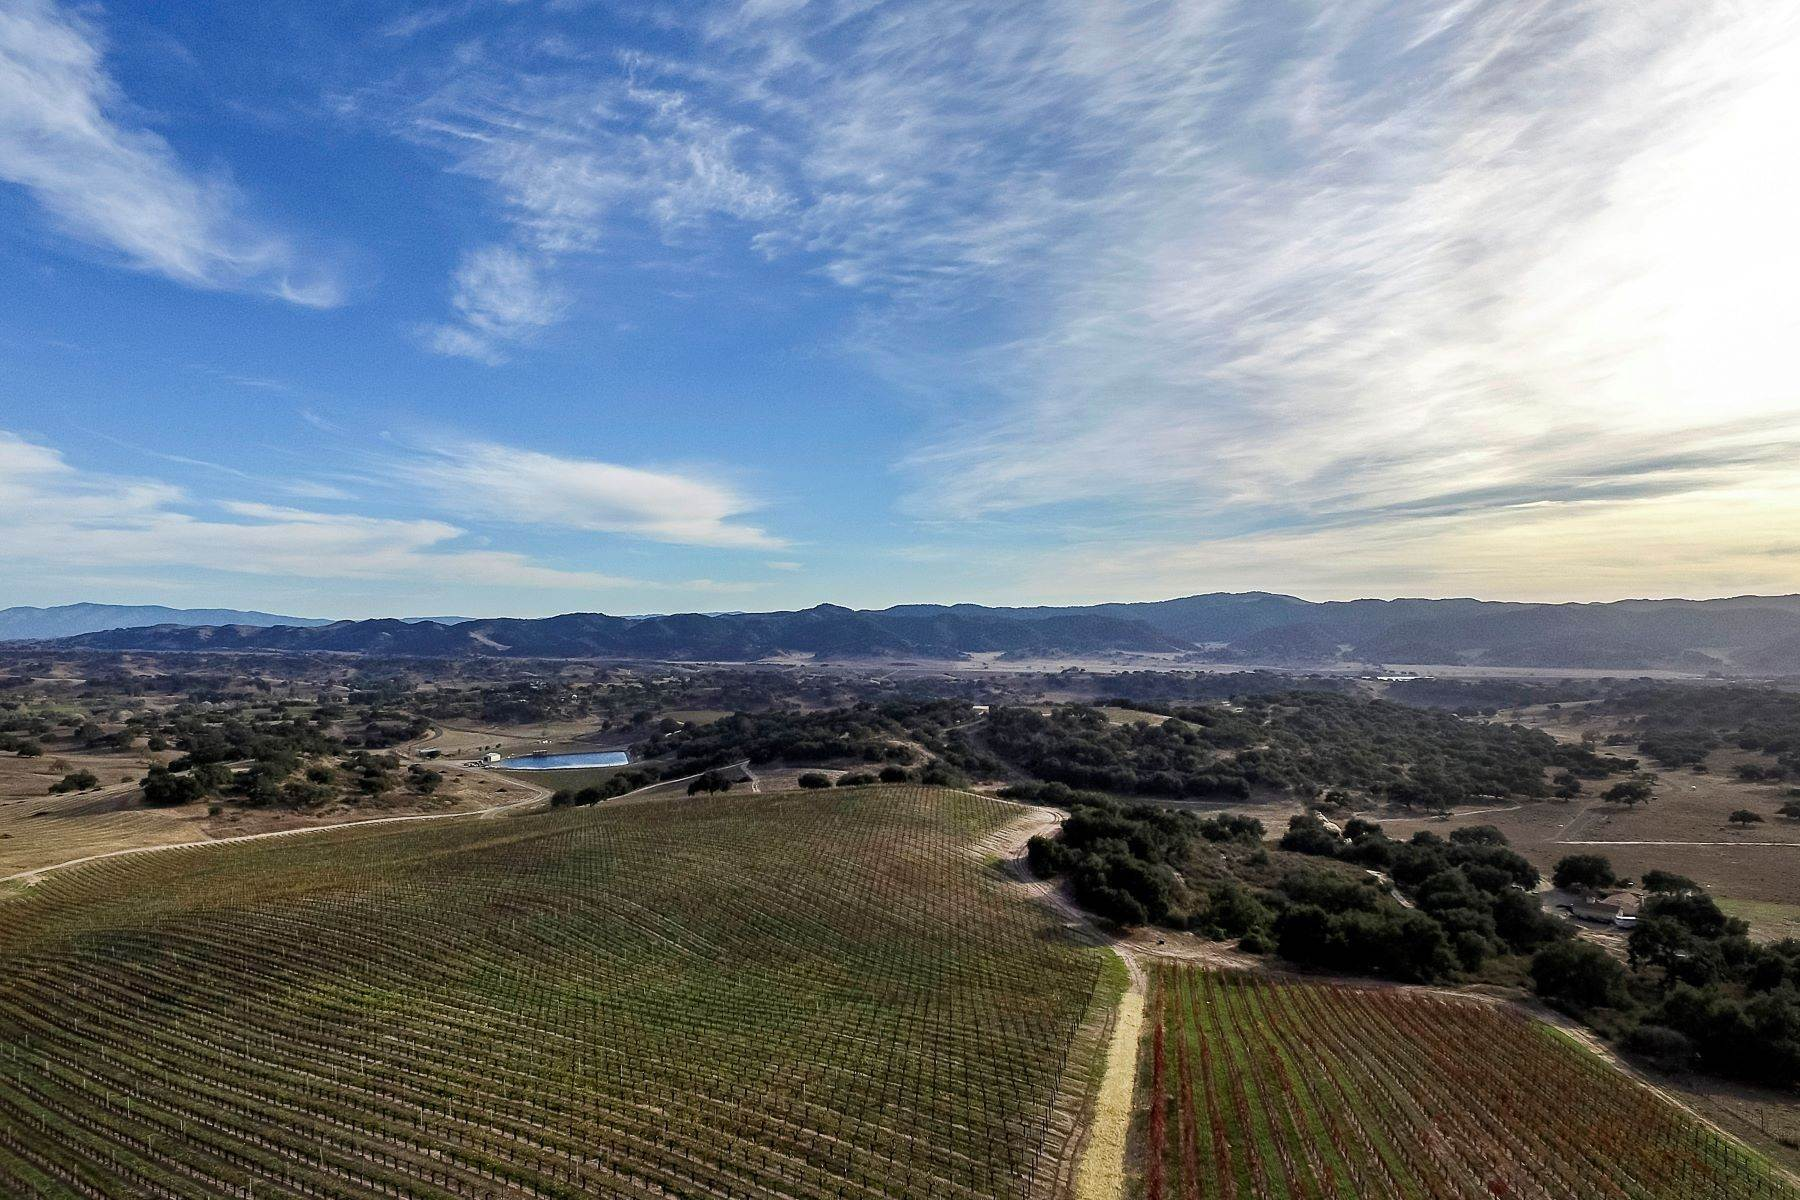 Vineyard Real Estate 为 销售 在 Alisos Canyon Vineyard 9981 Alisos Canyon Road 洛斯阿拉莫斯, 加利福尼亚州 93440 美国